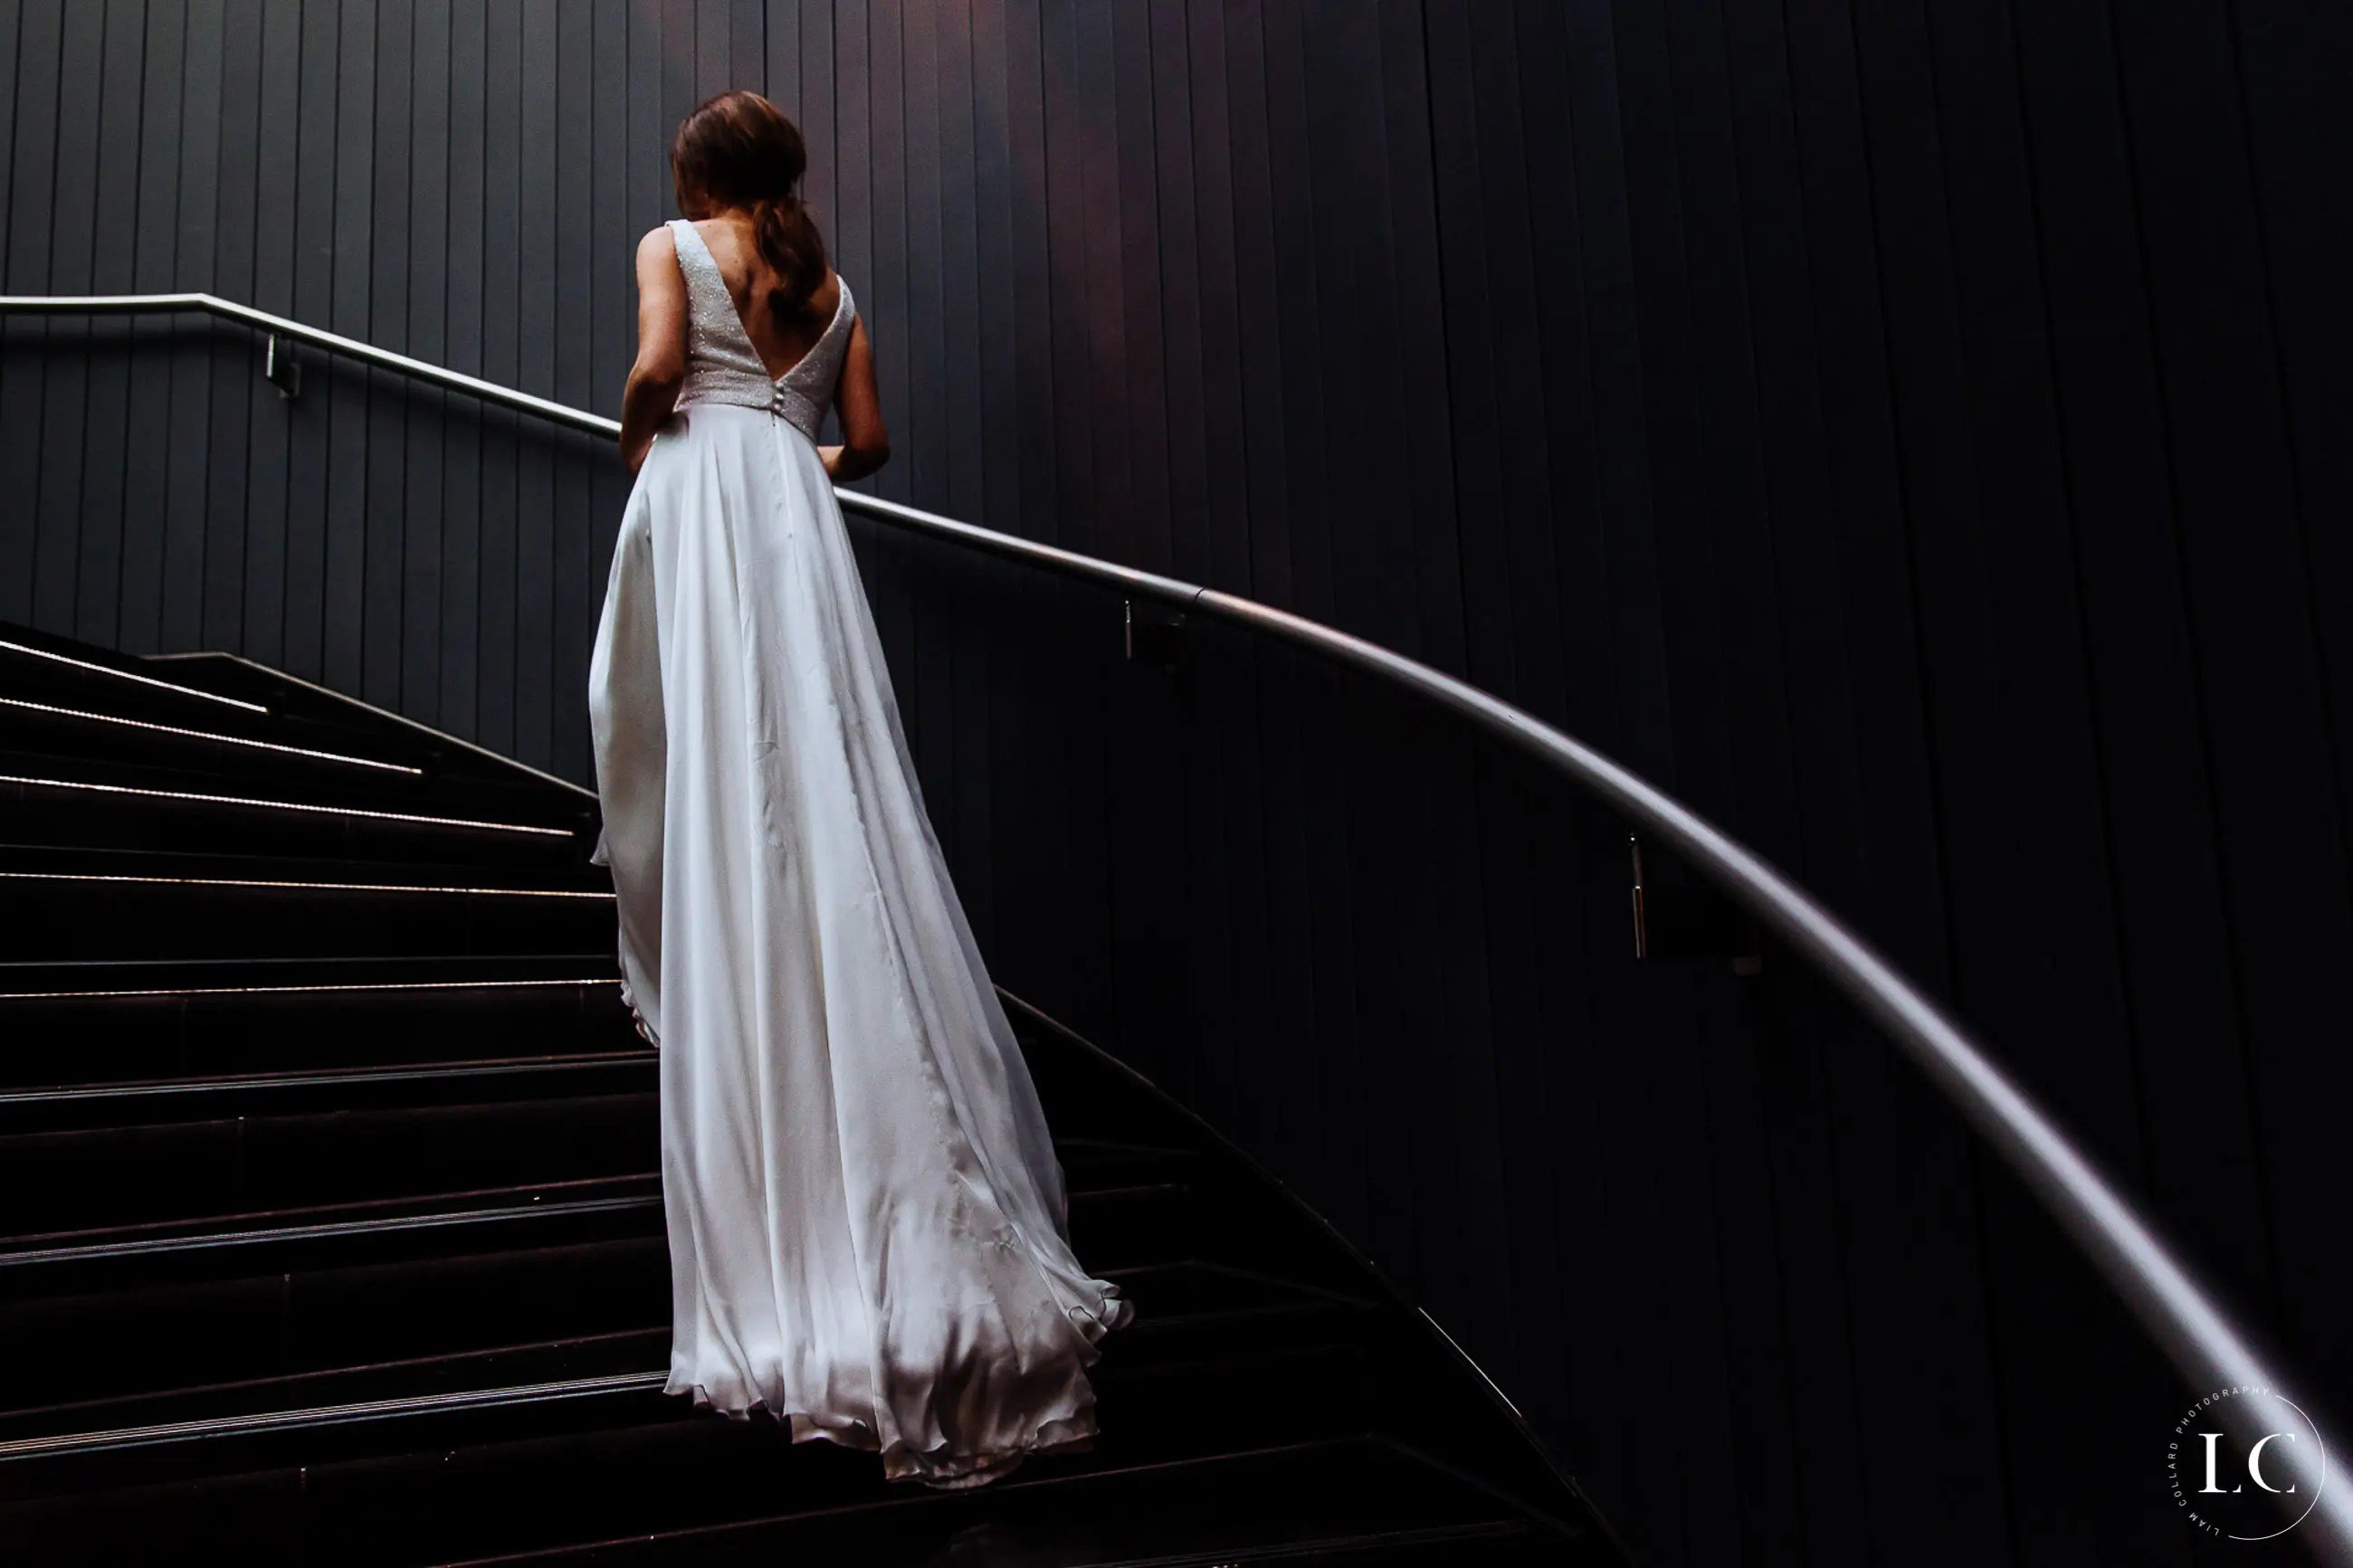 Bride walking up staircase